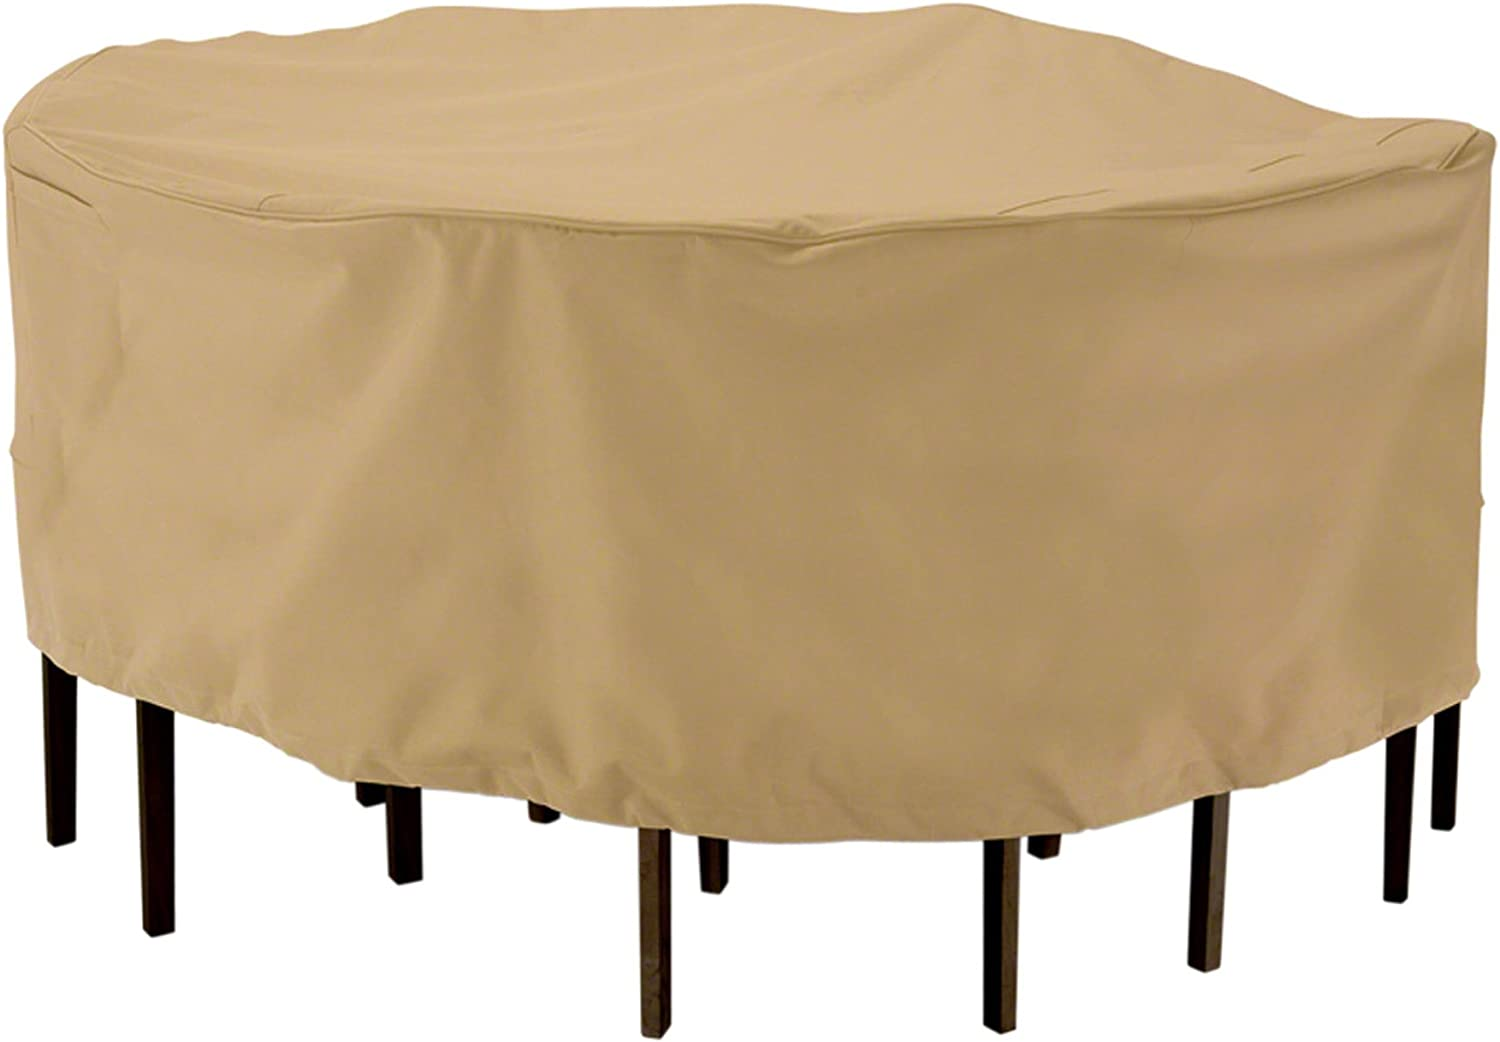 Classic Accessories Terrazzo Shipping included Award Round Patio Cover Chair Set Table